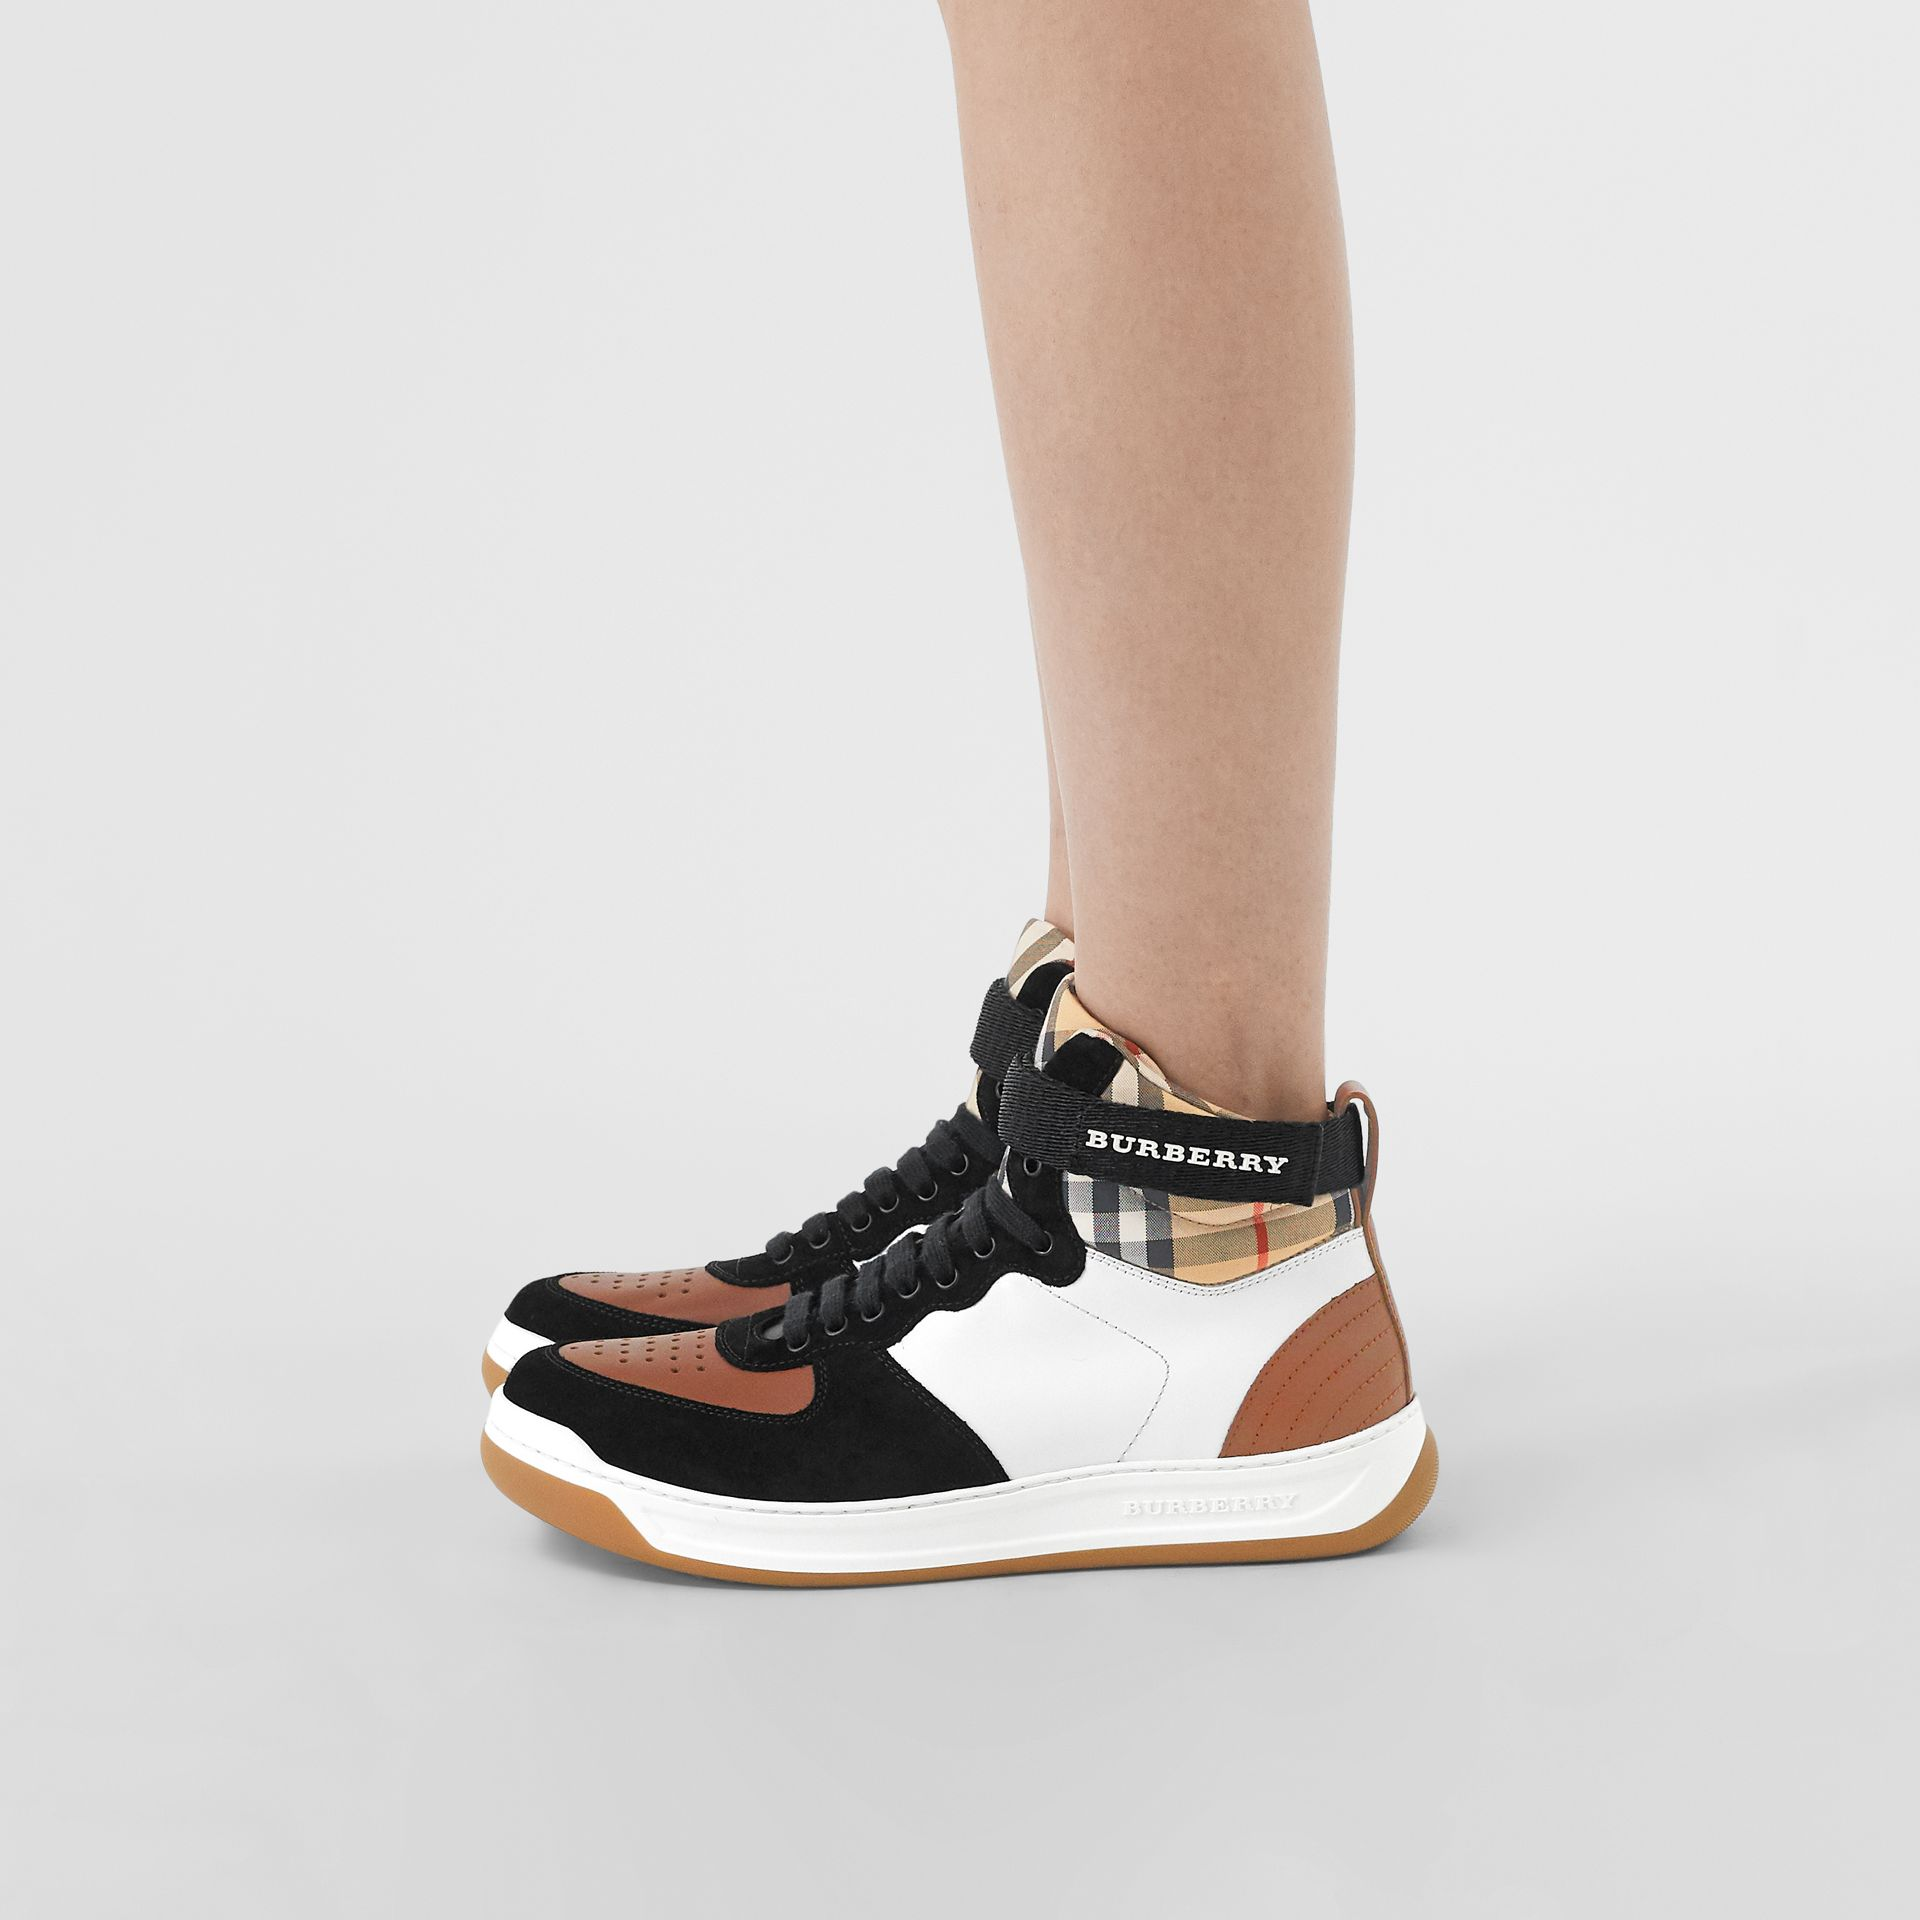 Leather and Suede High-top Sneakers in Camel - Women | Burberry United Kingdom - gallery image 2